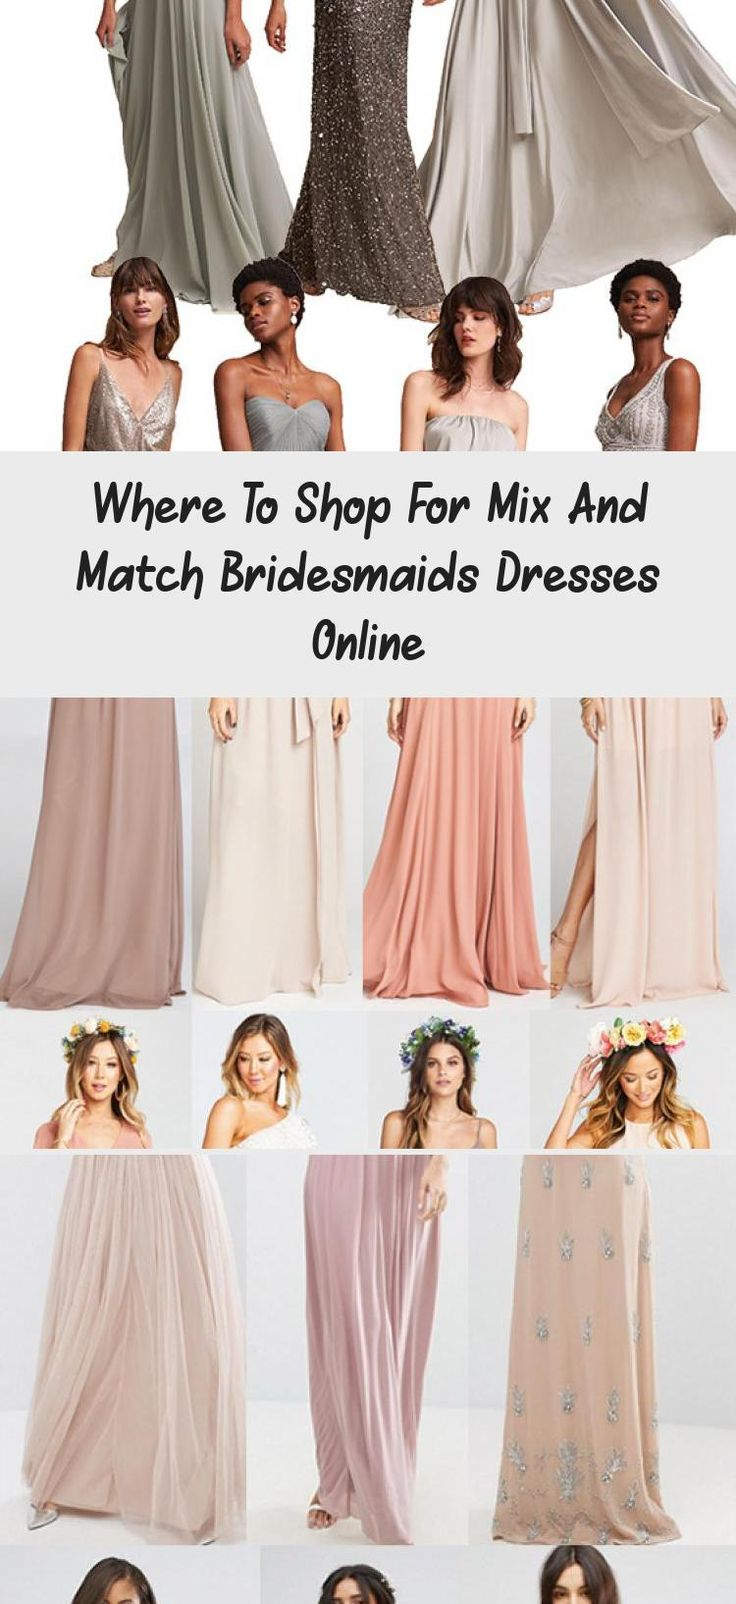 Searching for where to shop for mix and match bridesmaids dresses online? I've listed out my top five shops for gorgeous mix and match bridesmaids dresses for any time of year. Black mix and match bridesmaids dresses. Nude mix and match bridesmaids dresses. Blush mix and match bridesmaids dresses. Blue mix and match bridesmaids dresses. Gray mix and match bridesmaids dresses. How to pull off mix and match bridesmaids dresses. Mismatched bridal party. Stunning mismatched bridal party. How to: Mix